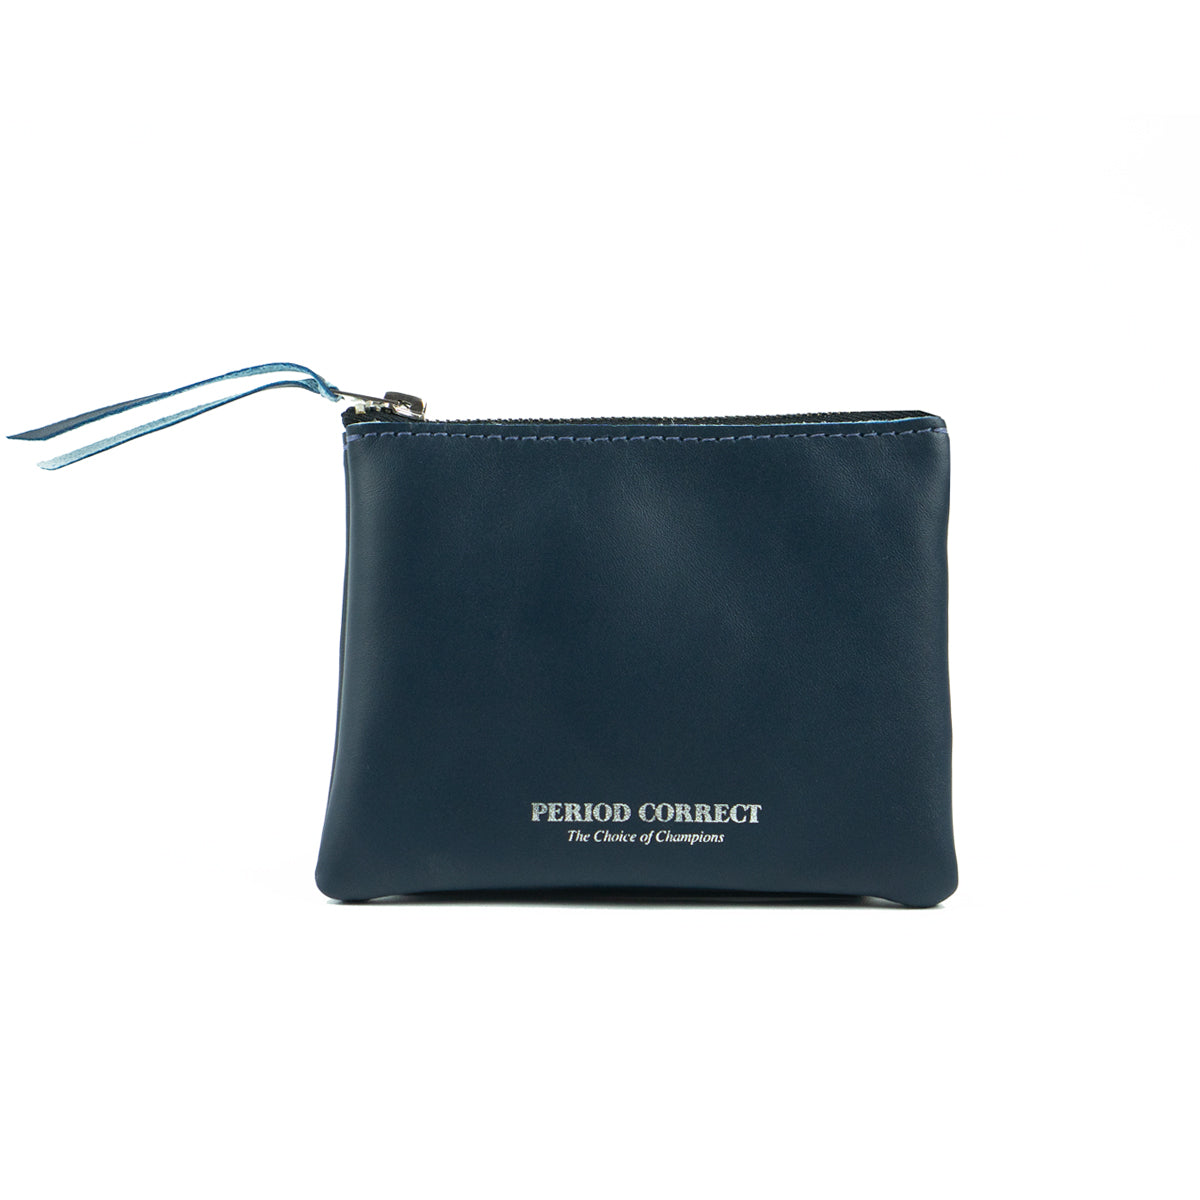 LEATHER CHAMPION WALLET